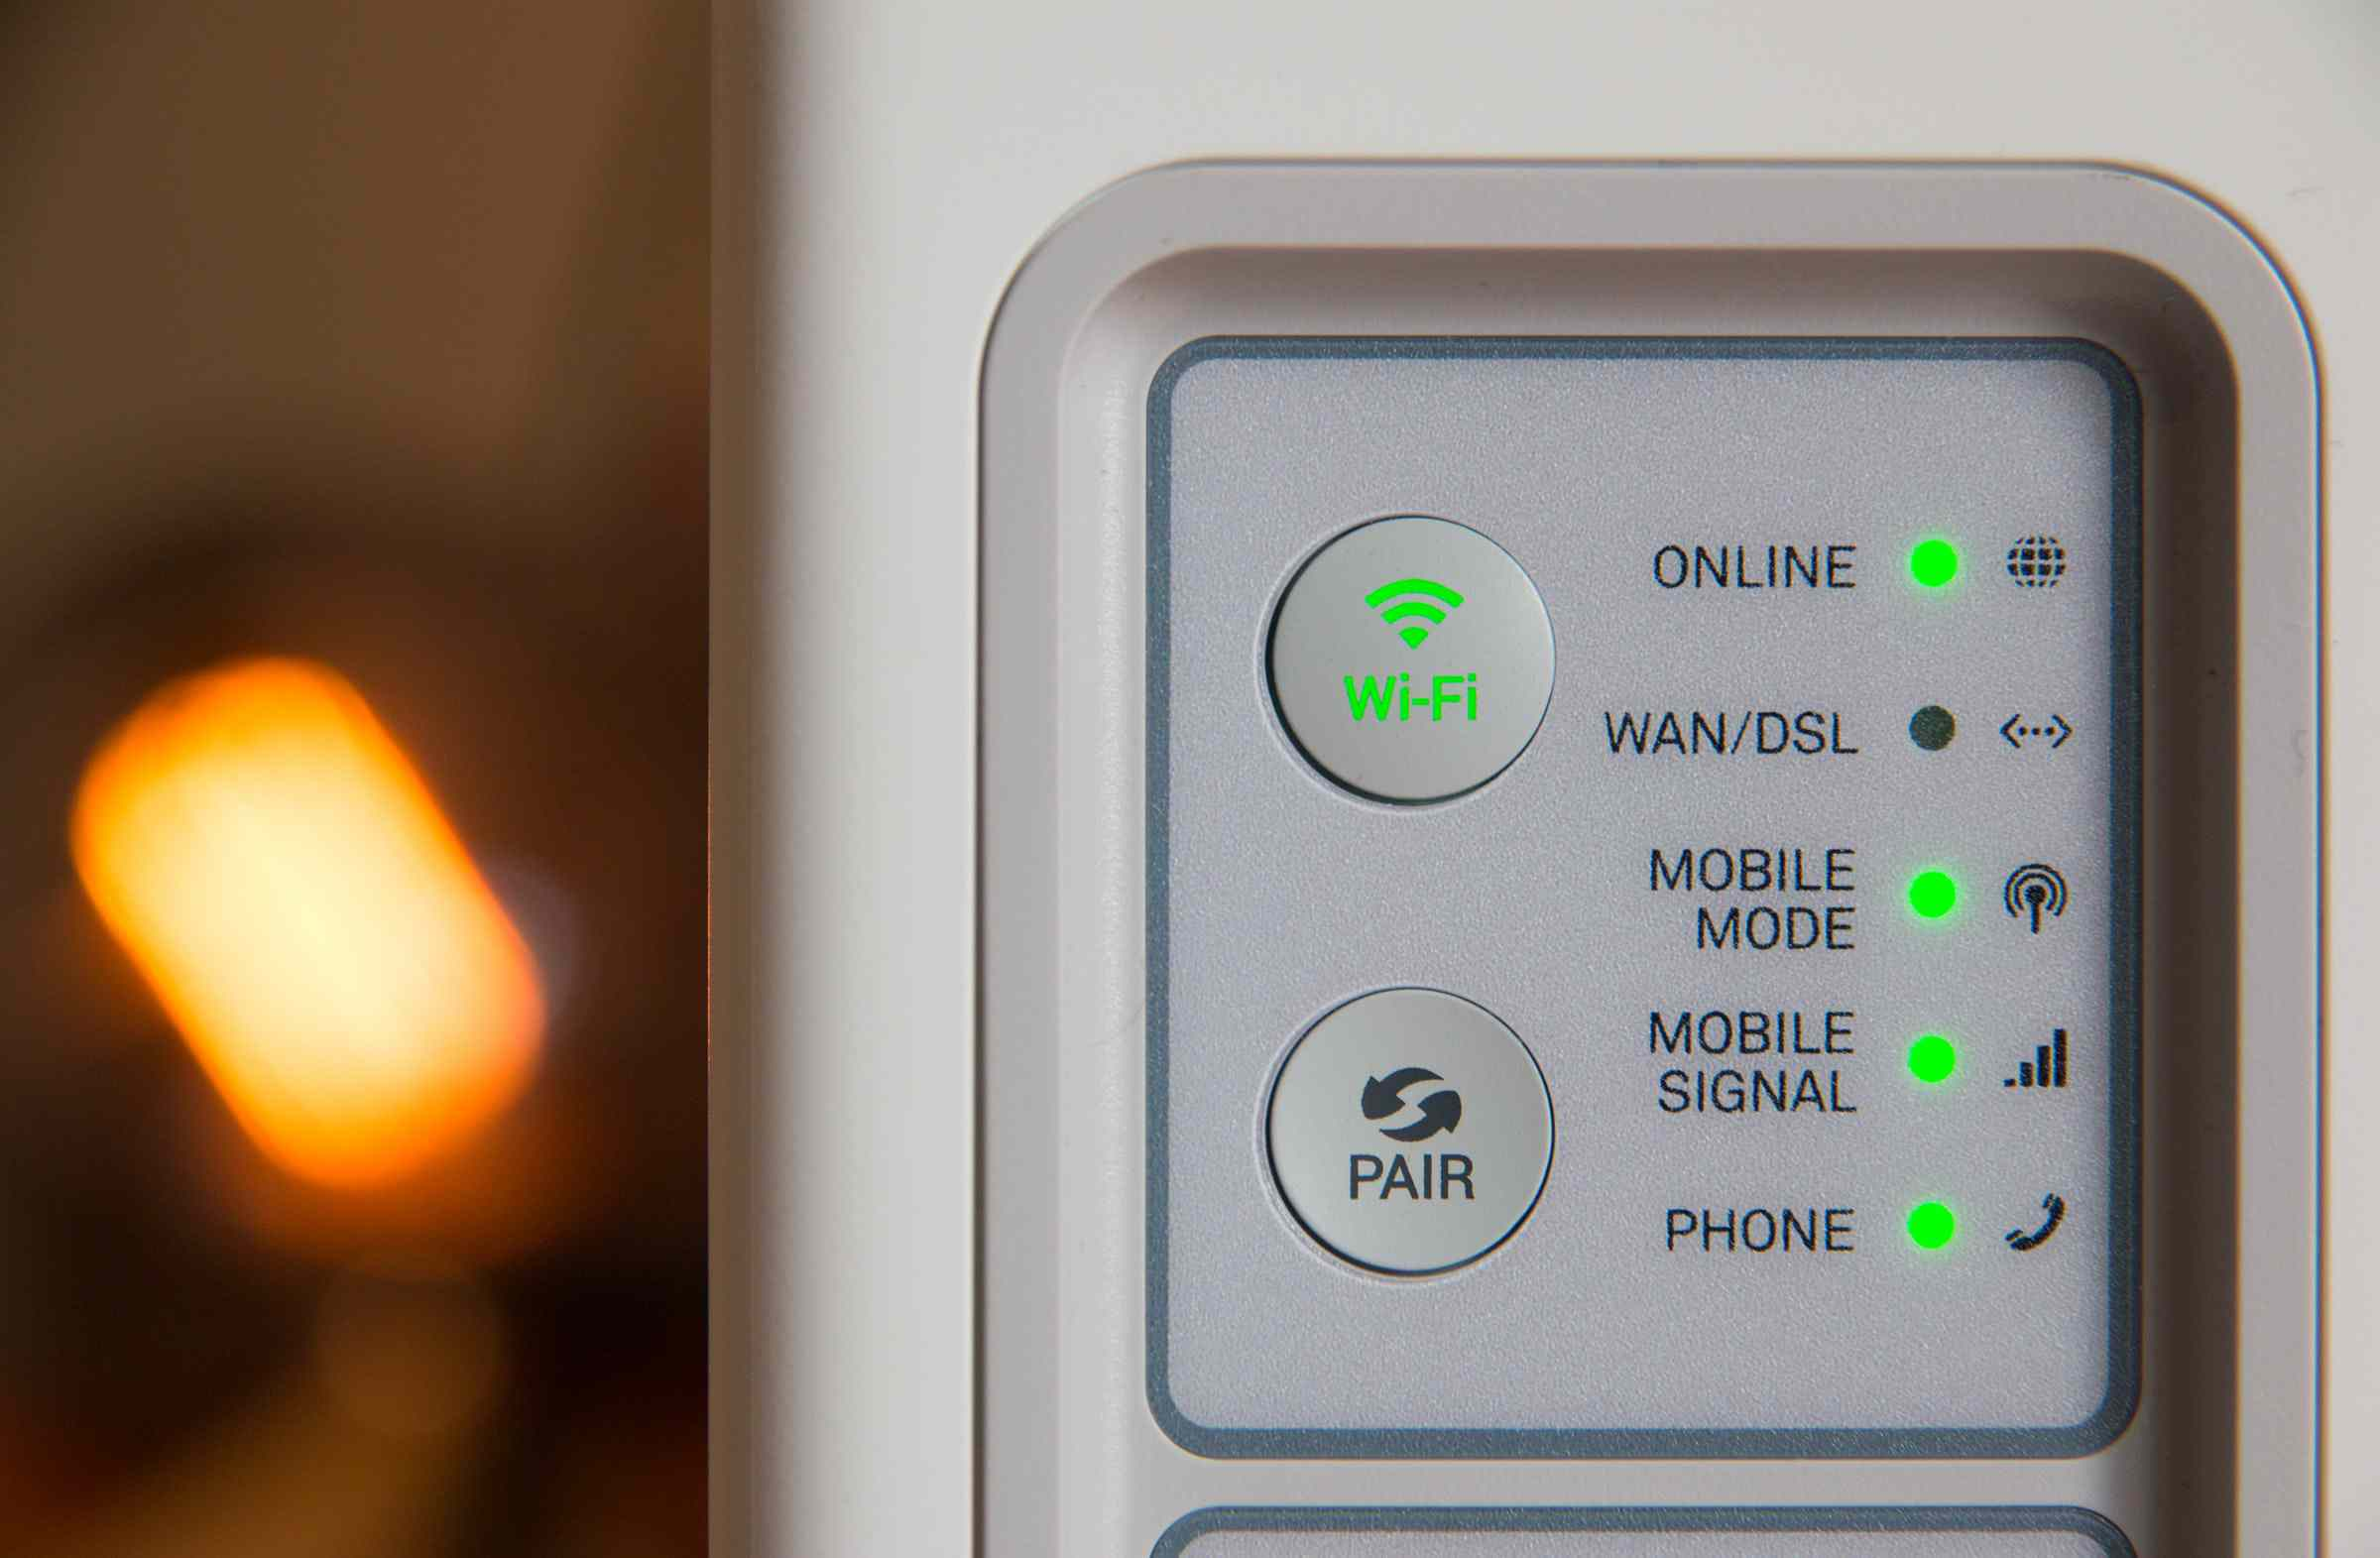 A router showing off its fancy pairing button